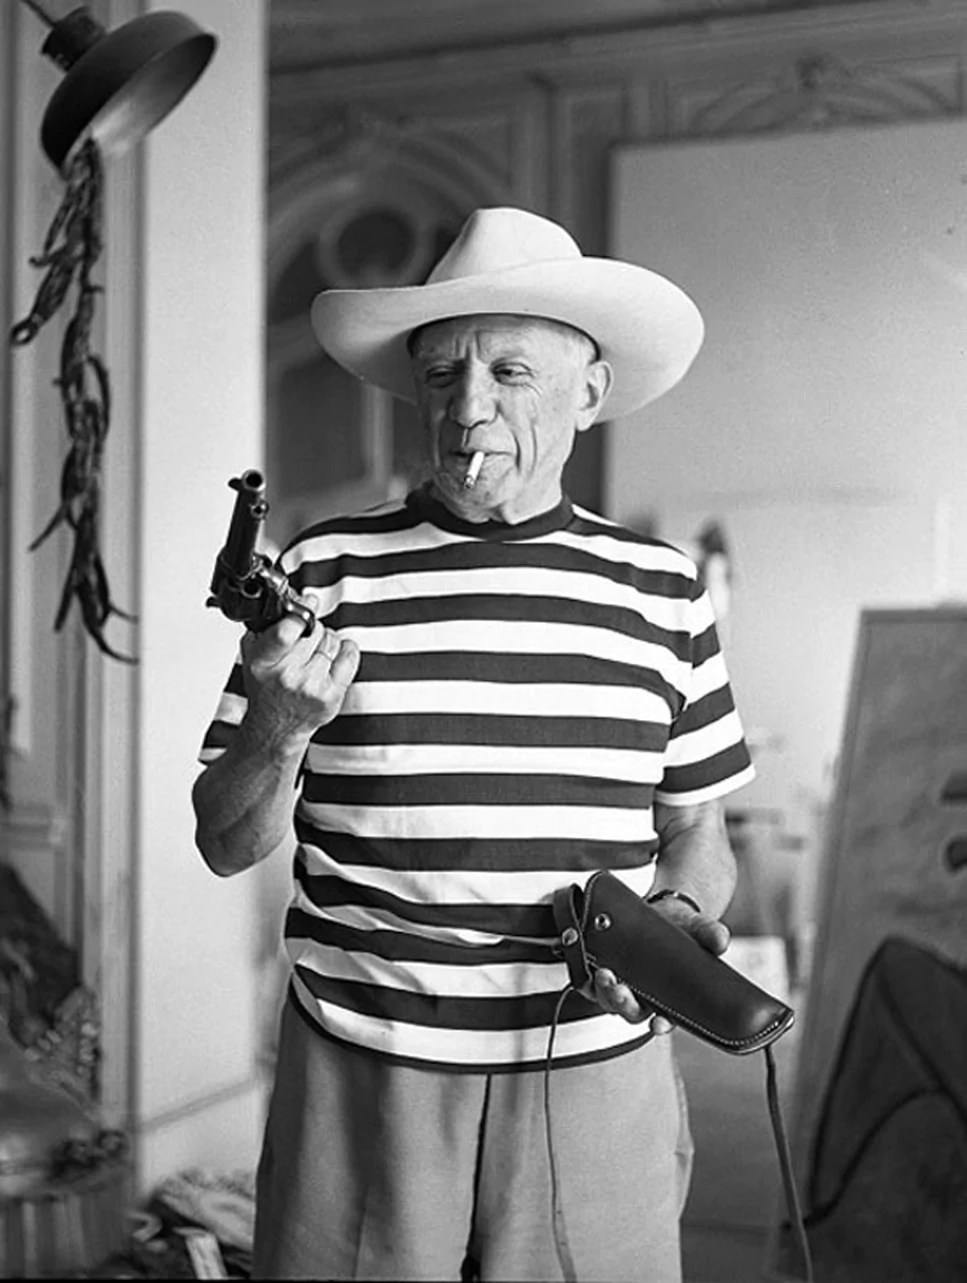 Pablo Picasso Pictures of Him